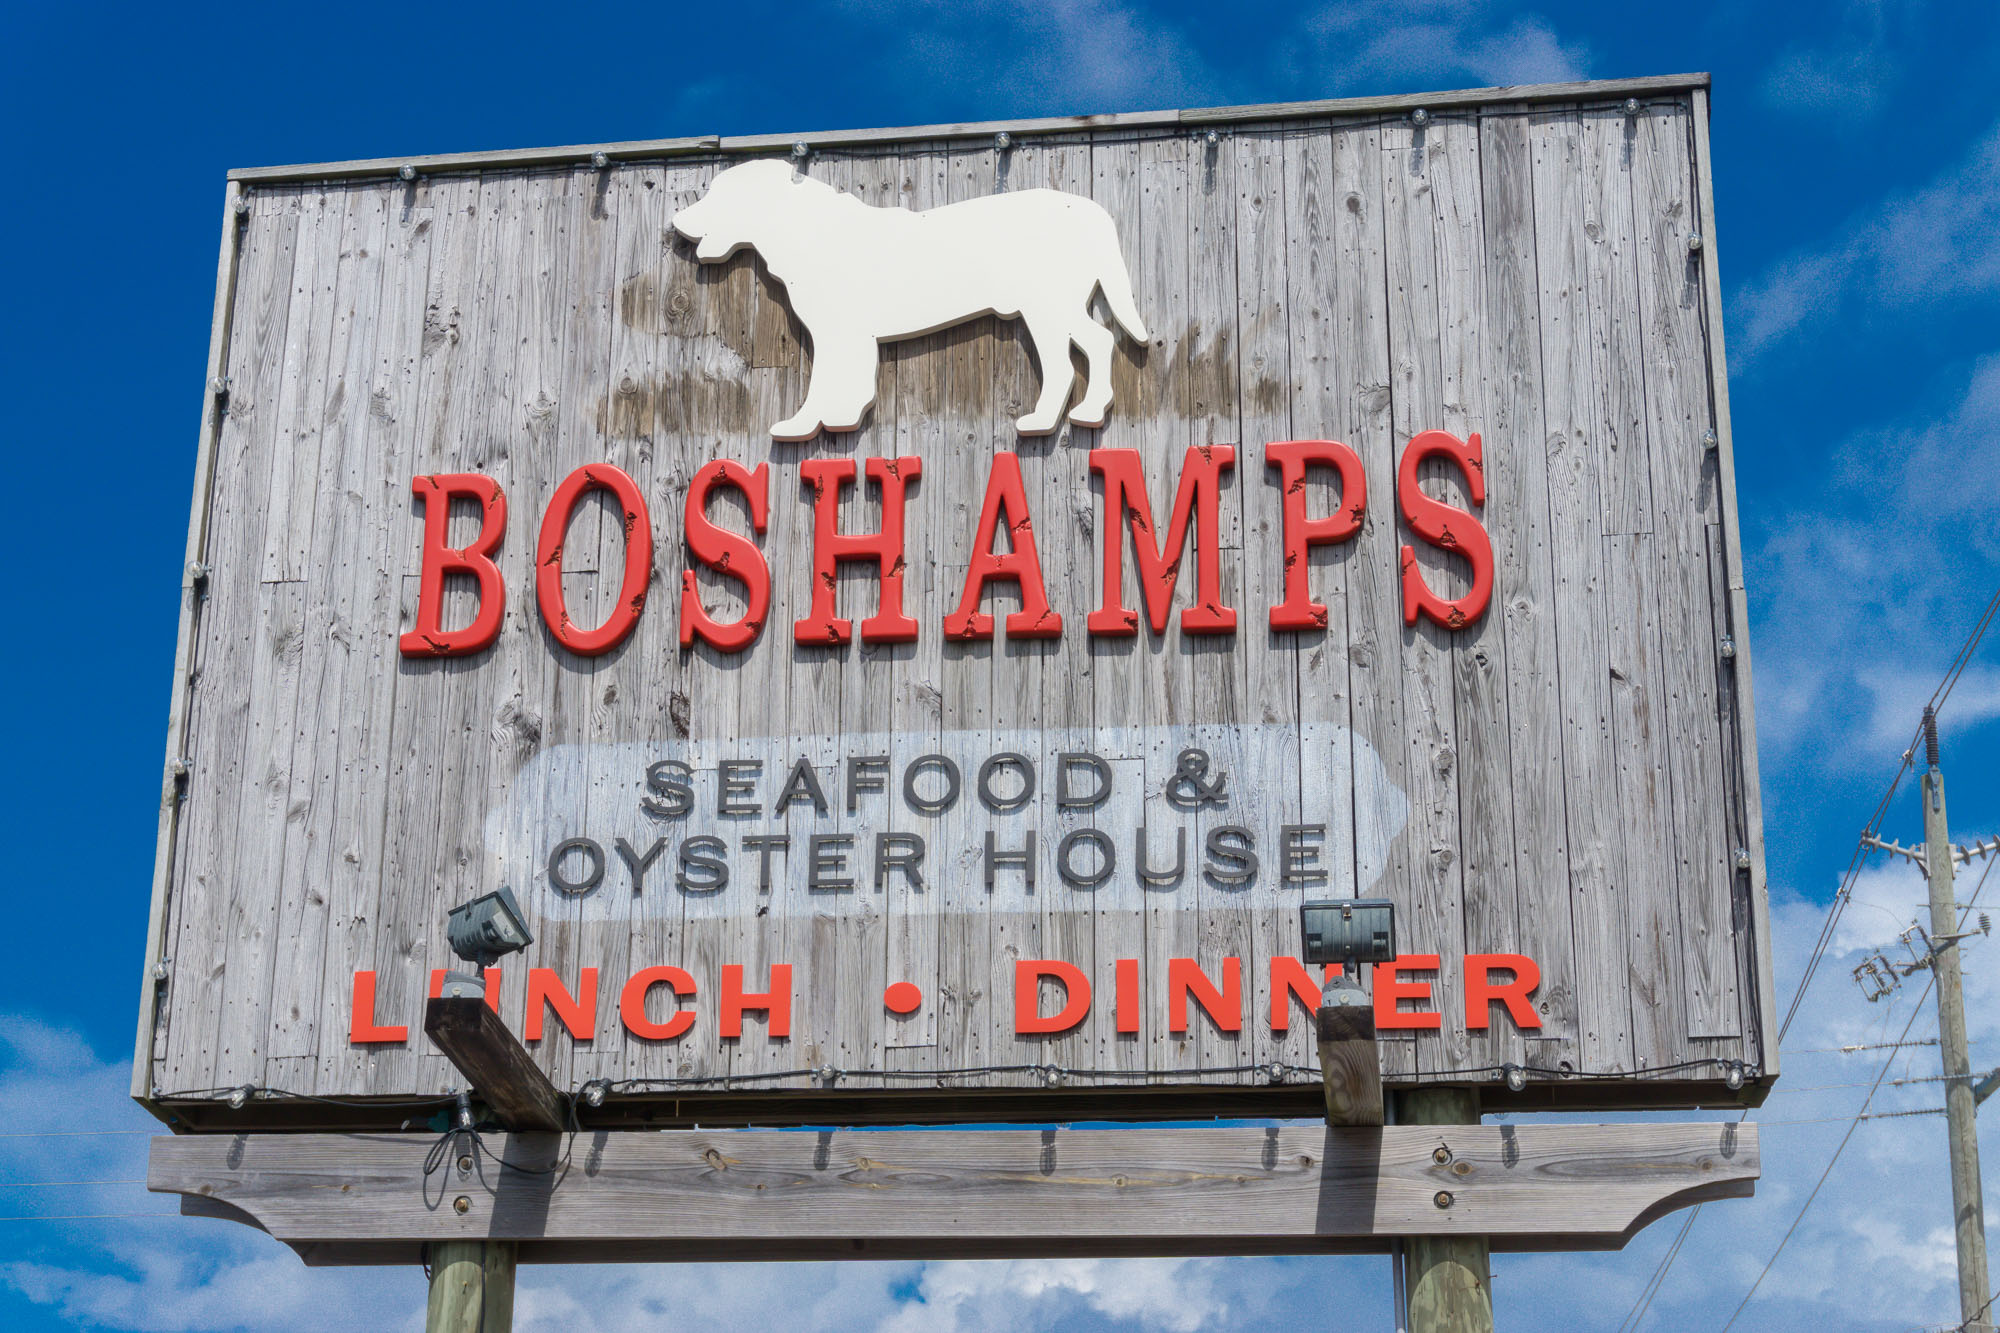 Boshamps Seafood and Oyster House